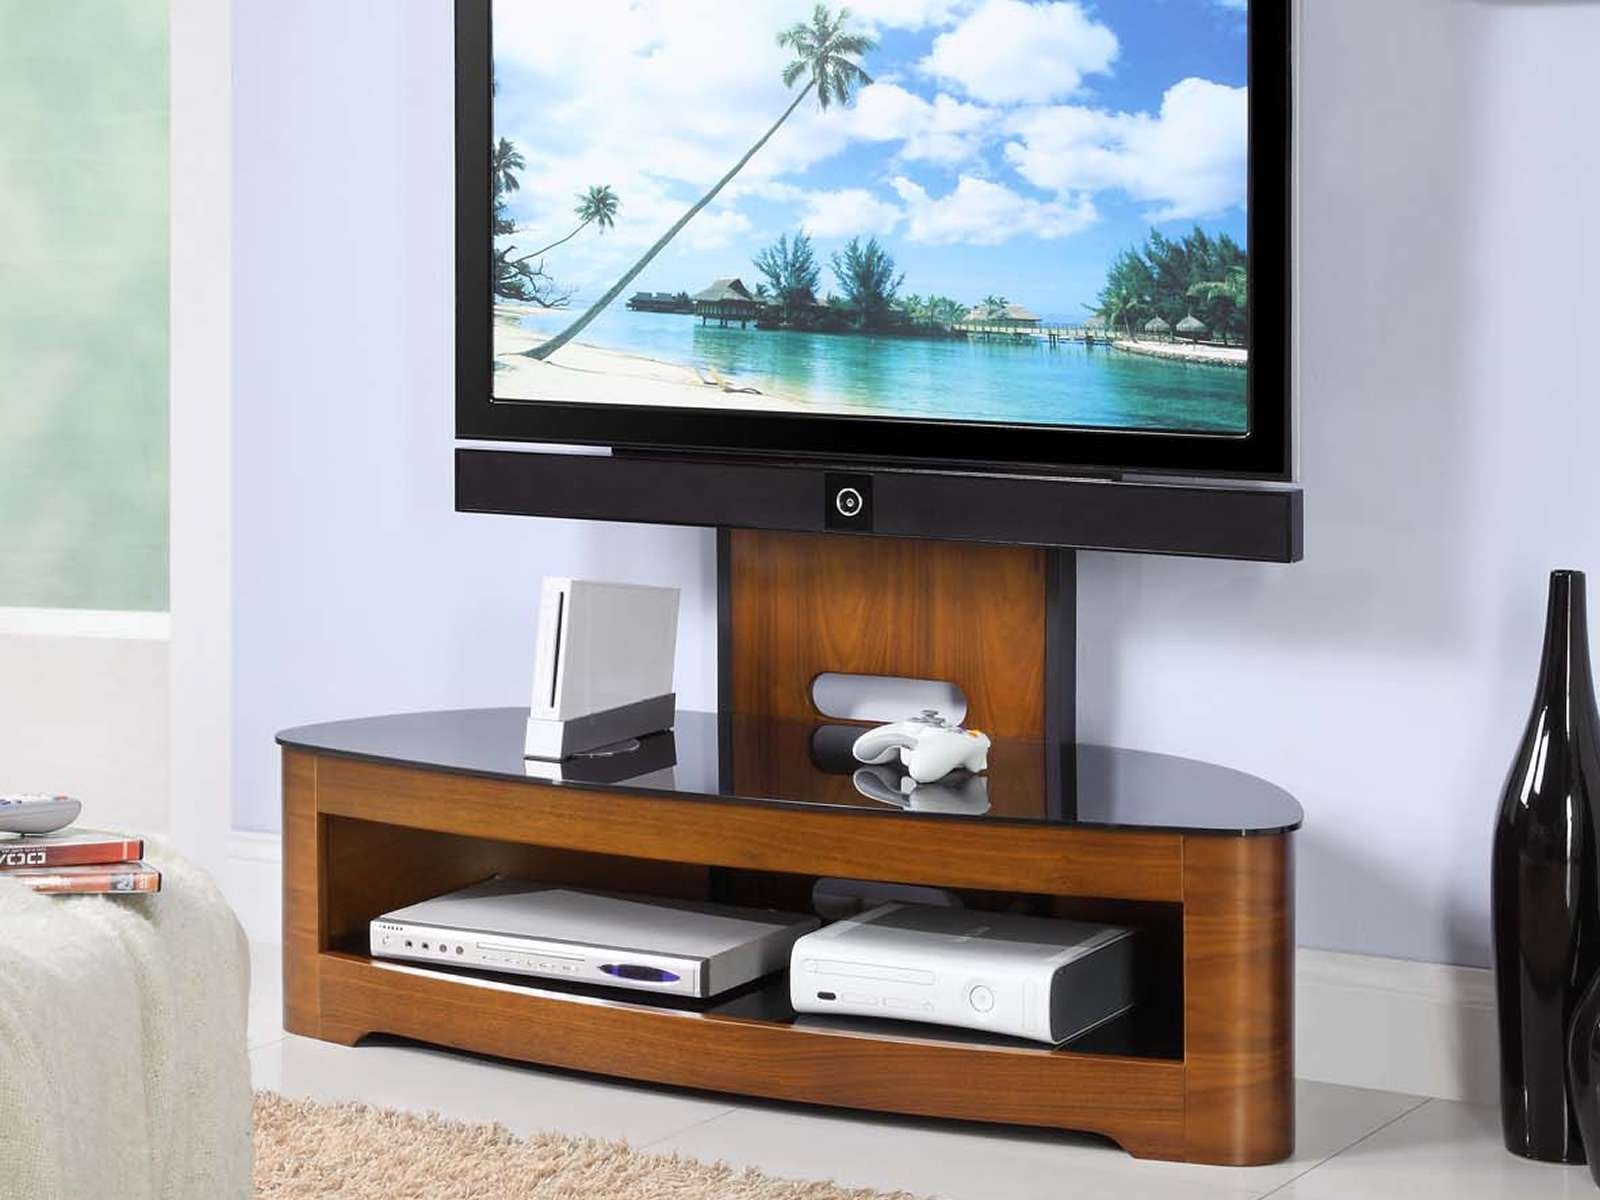 Home Decor: Bautiful Tv Stands With Flat Panel Mounts Combine Regarding Unique Tv Stands For Flat Screens (View 5 of 15)